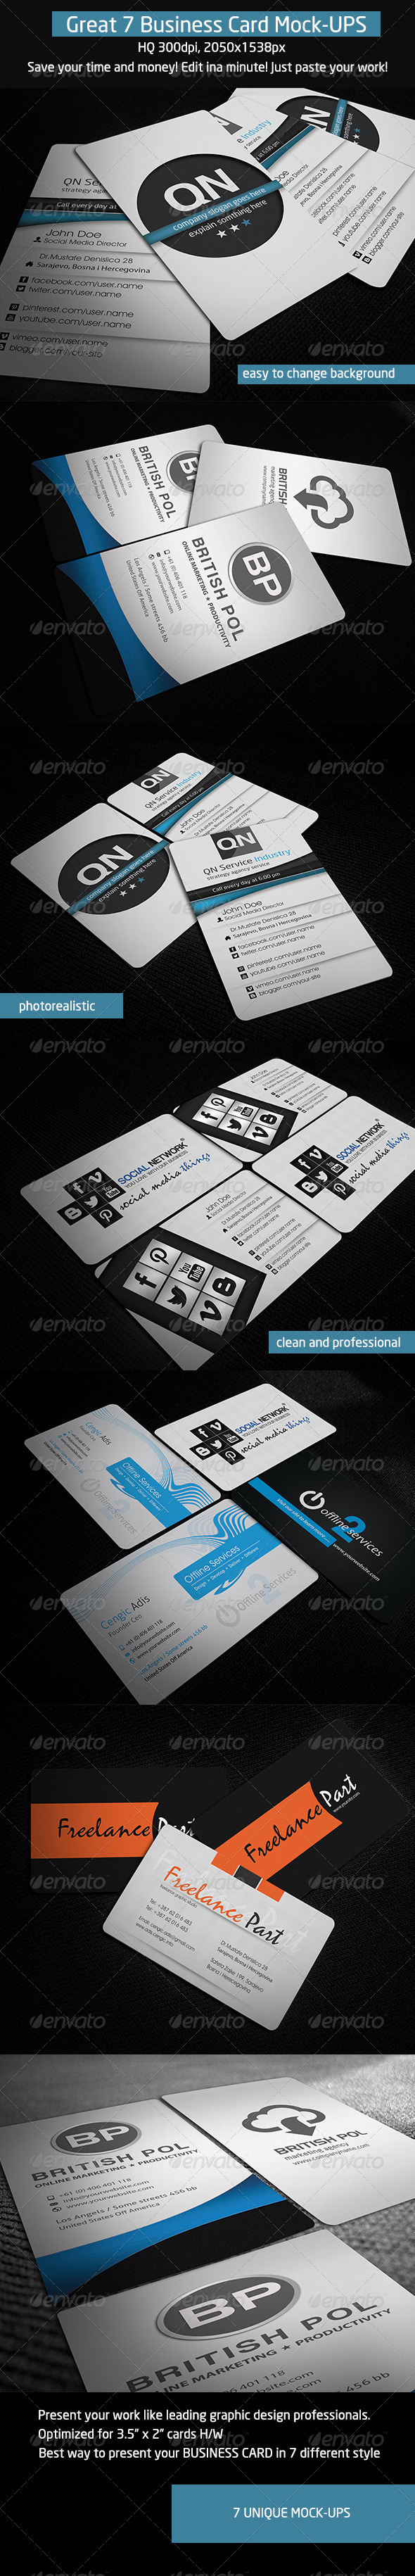 7 Business Card Mock-Ups - Business Cards Print